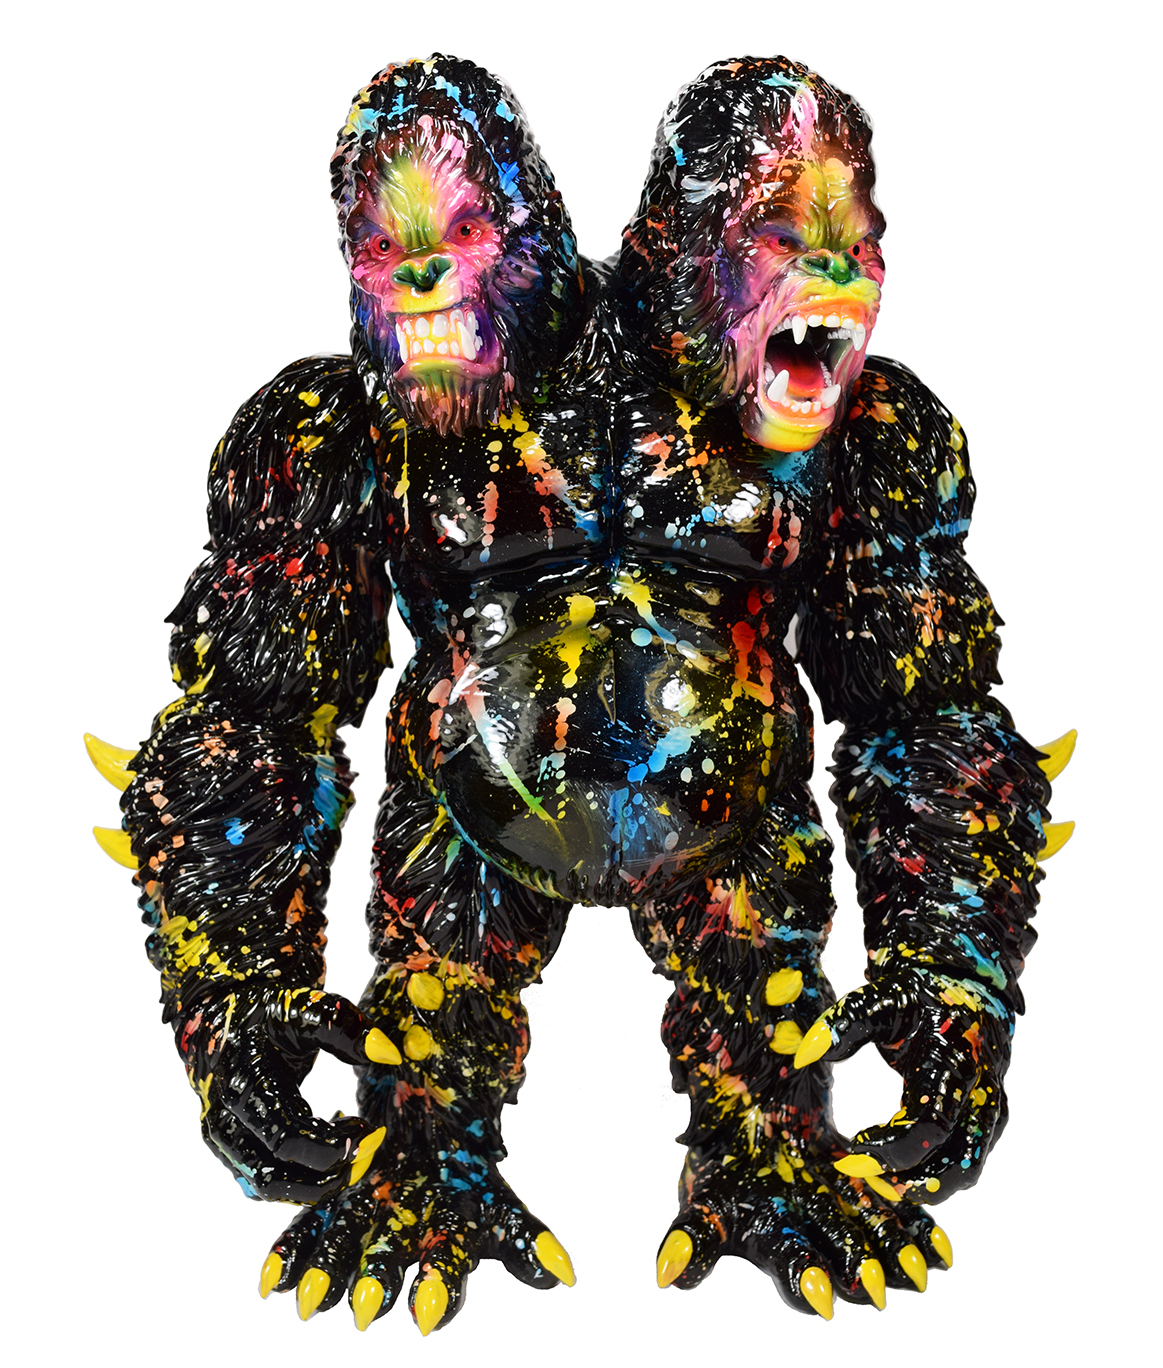 Custom Splatter Death Goliathon APE Planet-X x Mark Nagata